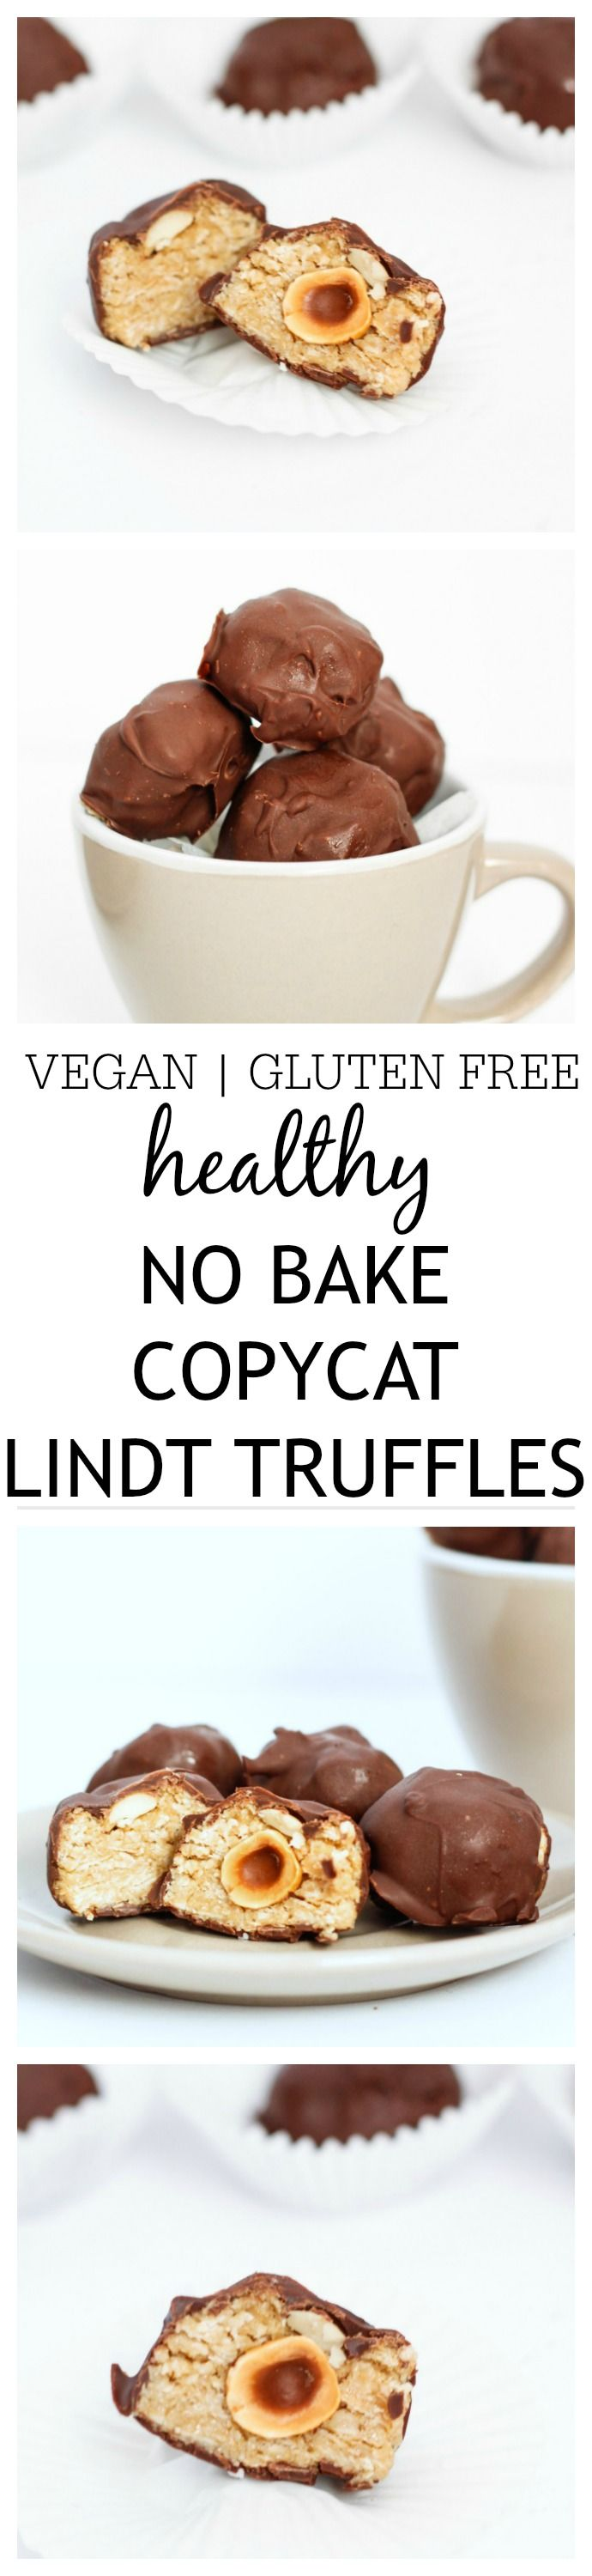 Healthy {No Bake} Copycat Lindt truffles- These copycat Lindt Truffles are the perfect treat to impress your guests without going to any effort! No bake, gluten free, vegan and a healthier (yet equally delicious!) spin on it's inspiration! @thebigmansworld -thebigmansworld.com